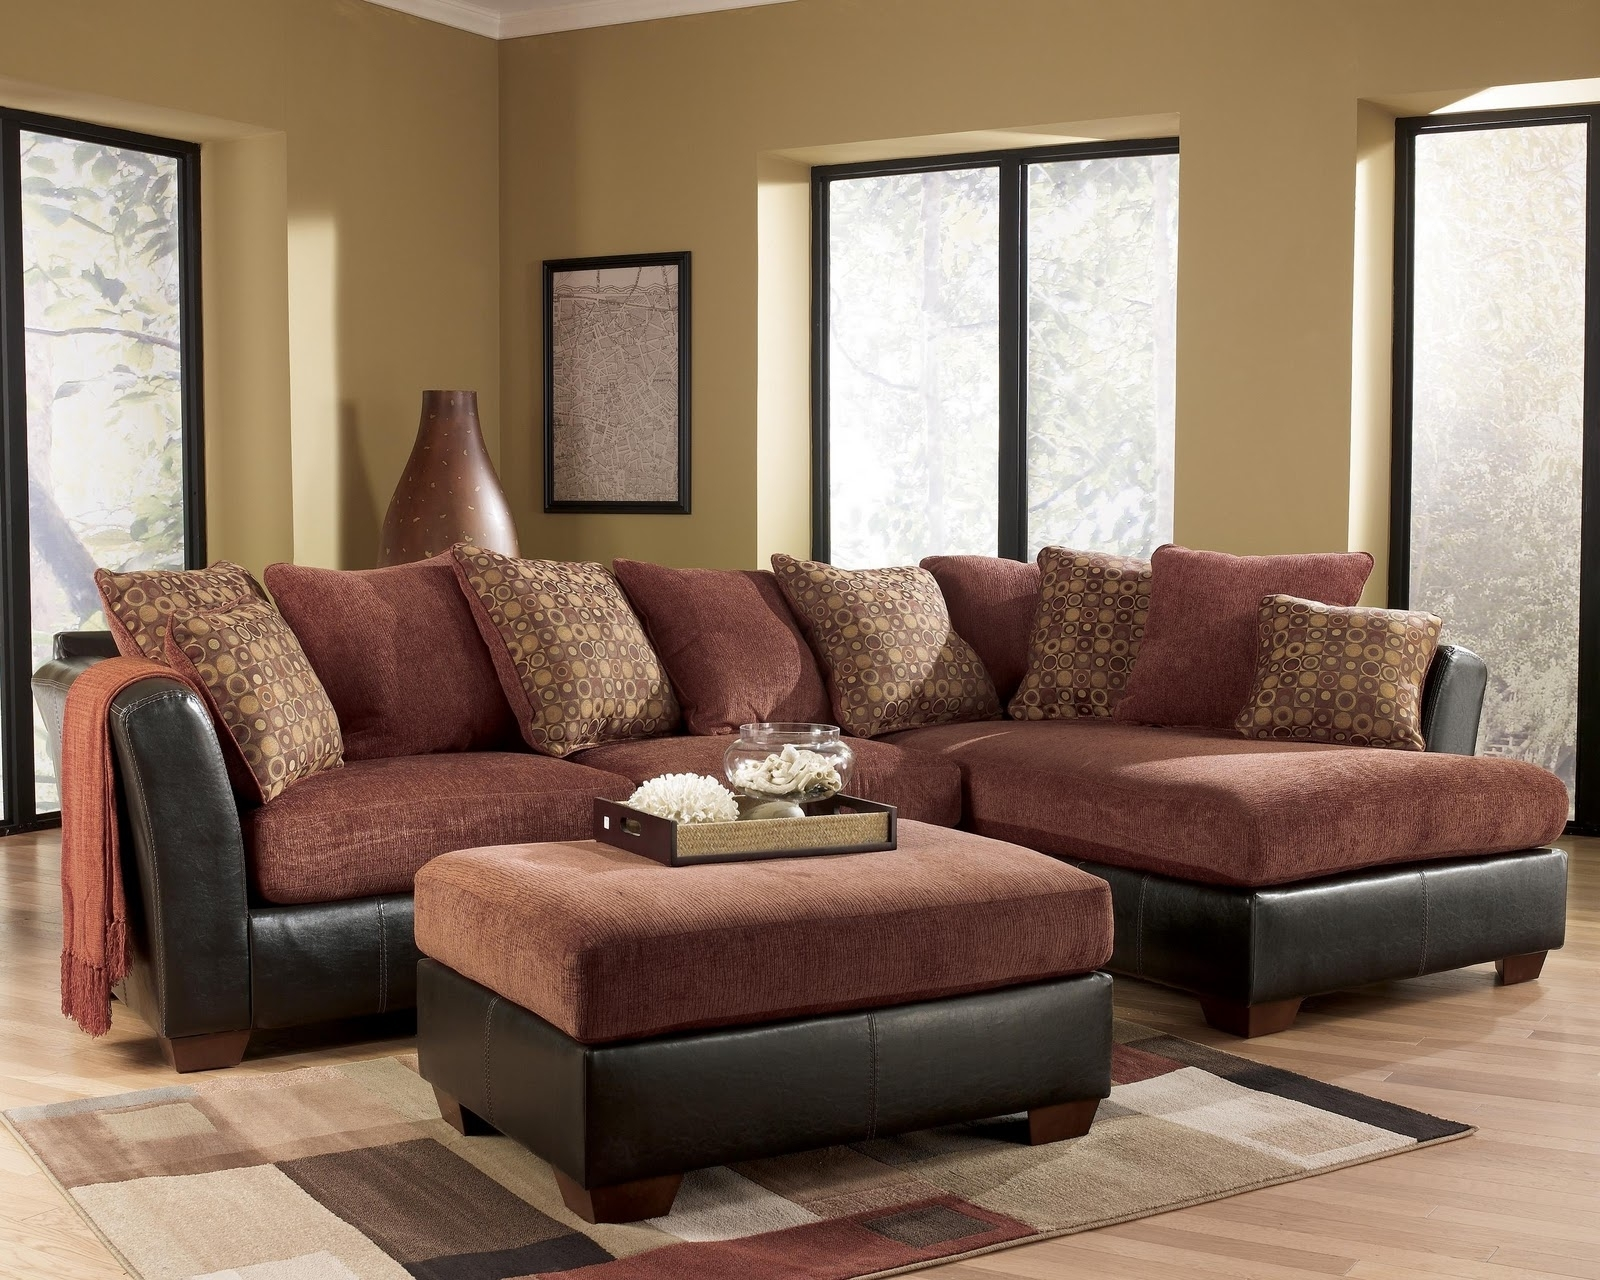 Ashley Furniture – Larson 31400 Cinnamon Sofa Sectional – Royal Regarding Famous Royal Furniture Sectional Sofas (View 3 of 15)